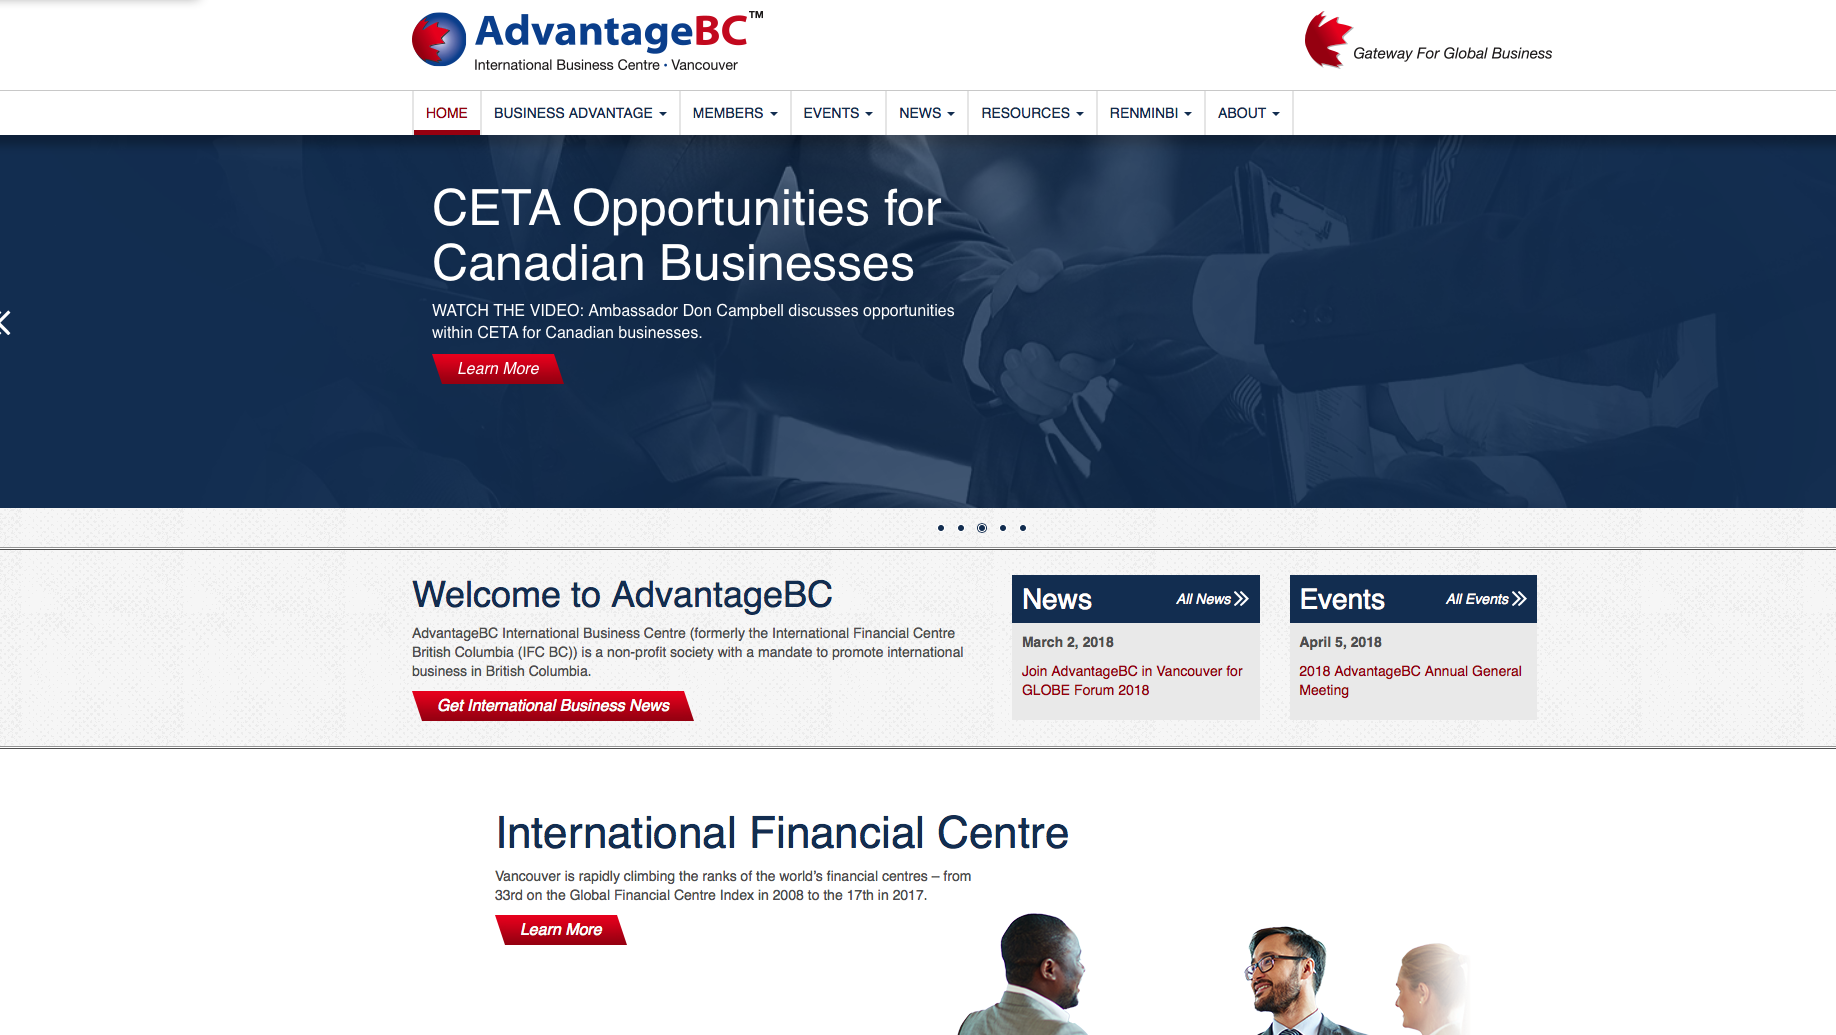 https://advantagebc.ca